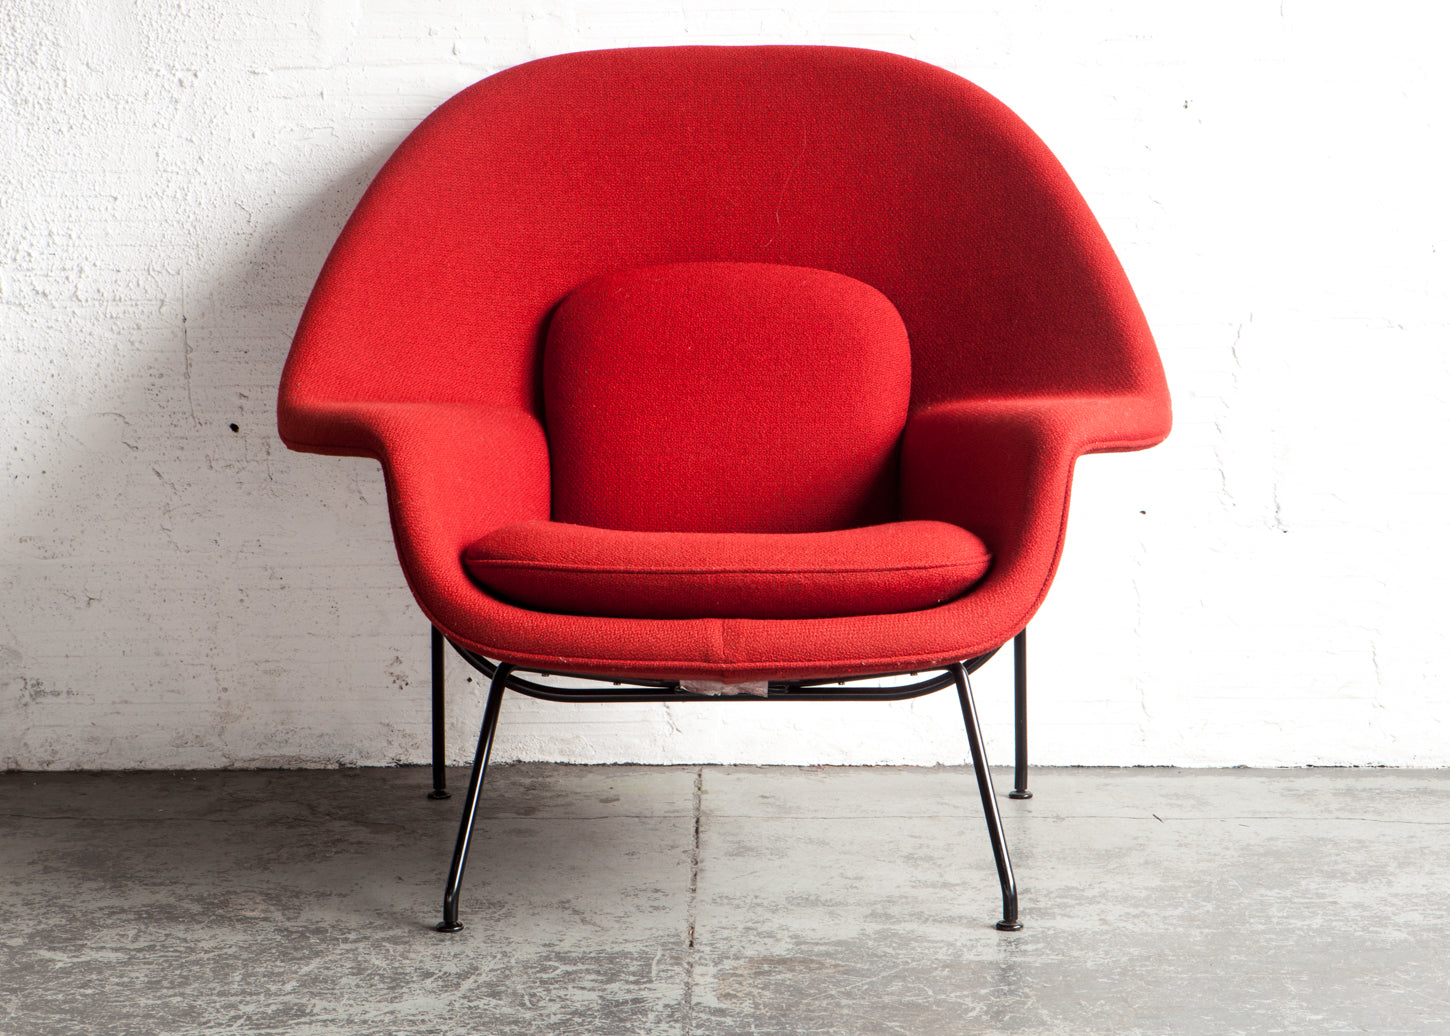 Eero Saarinen Womb Chair History. Womb Chair \u0026 Ottoman By Eero Saarinen  For Knoll History L